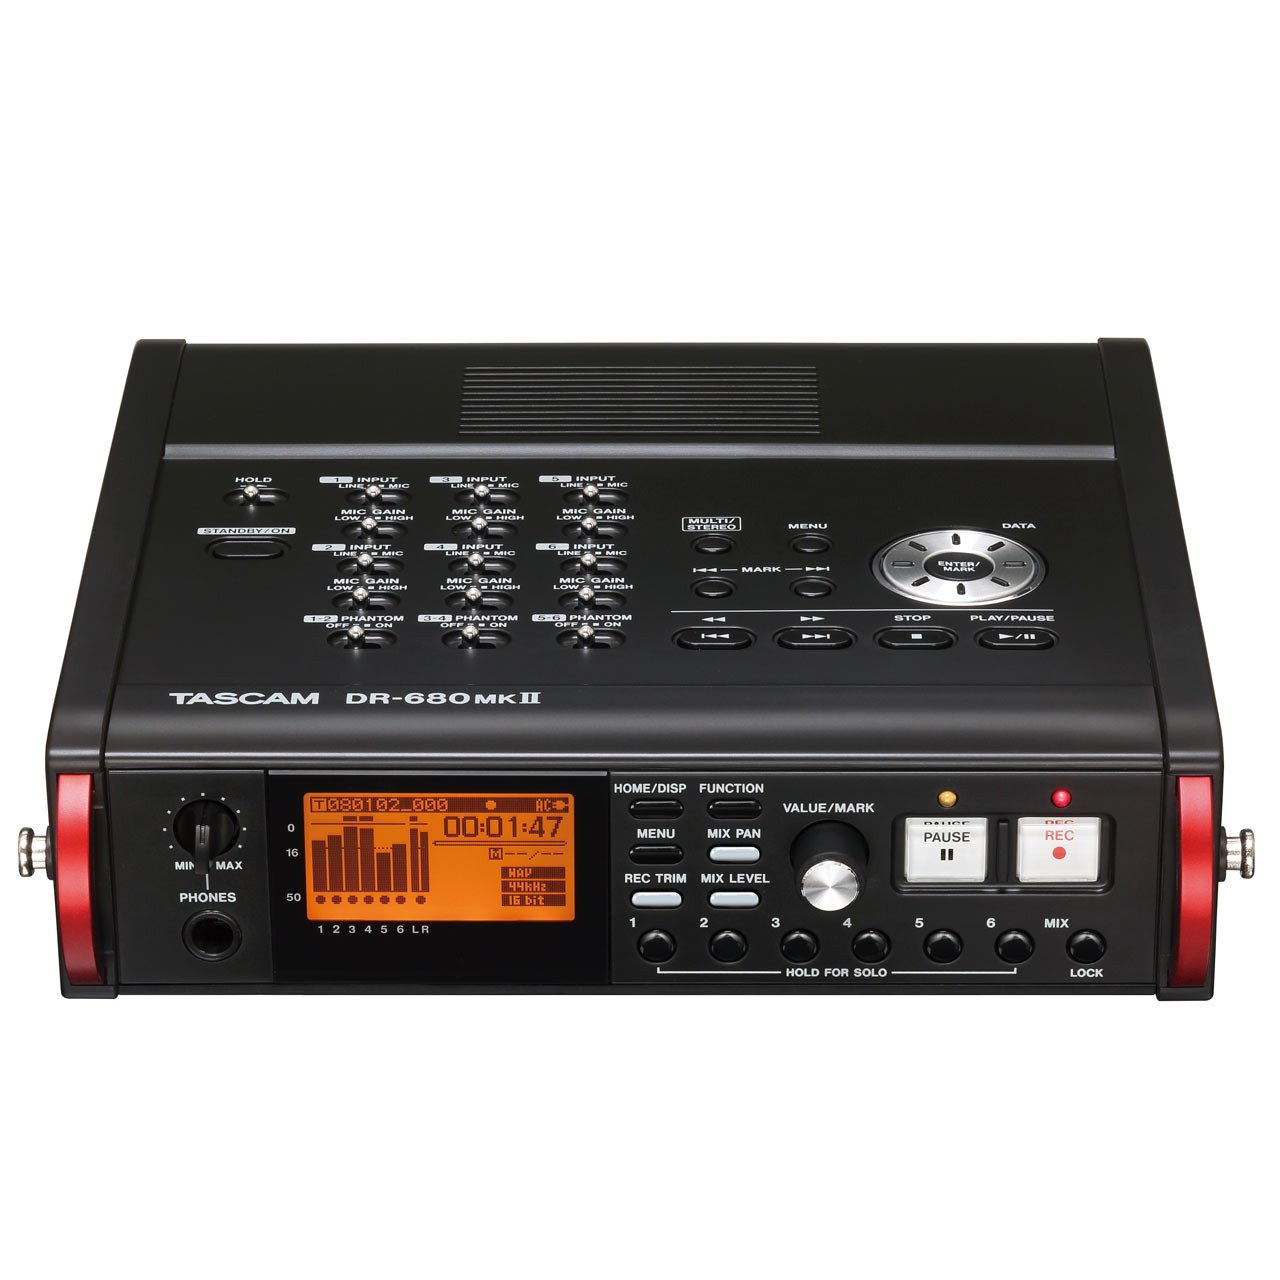 Portable Recorder - Tascam DR-680MKII Portable Multichannel Recorder